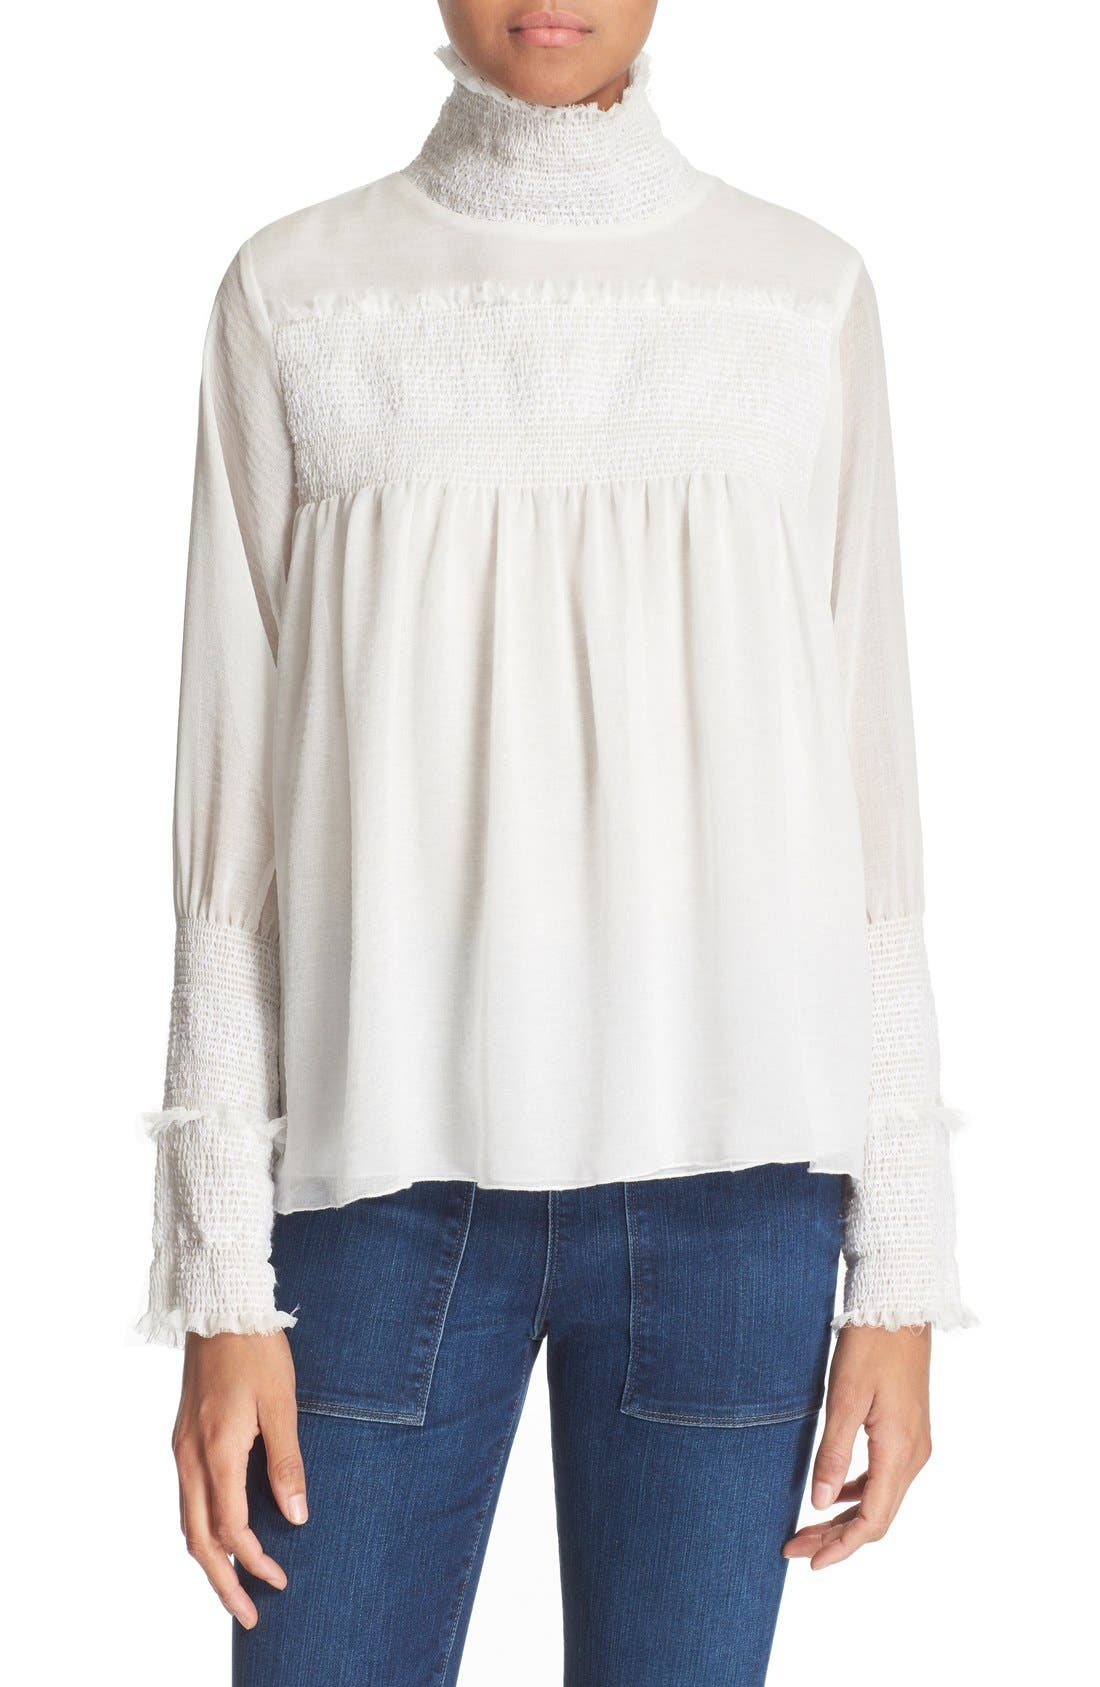 Alternate Image 1 Selected - See by Chloé Smocked High Neck Blouse